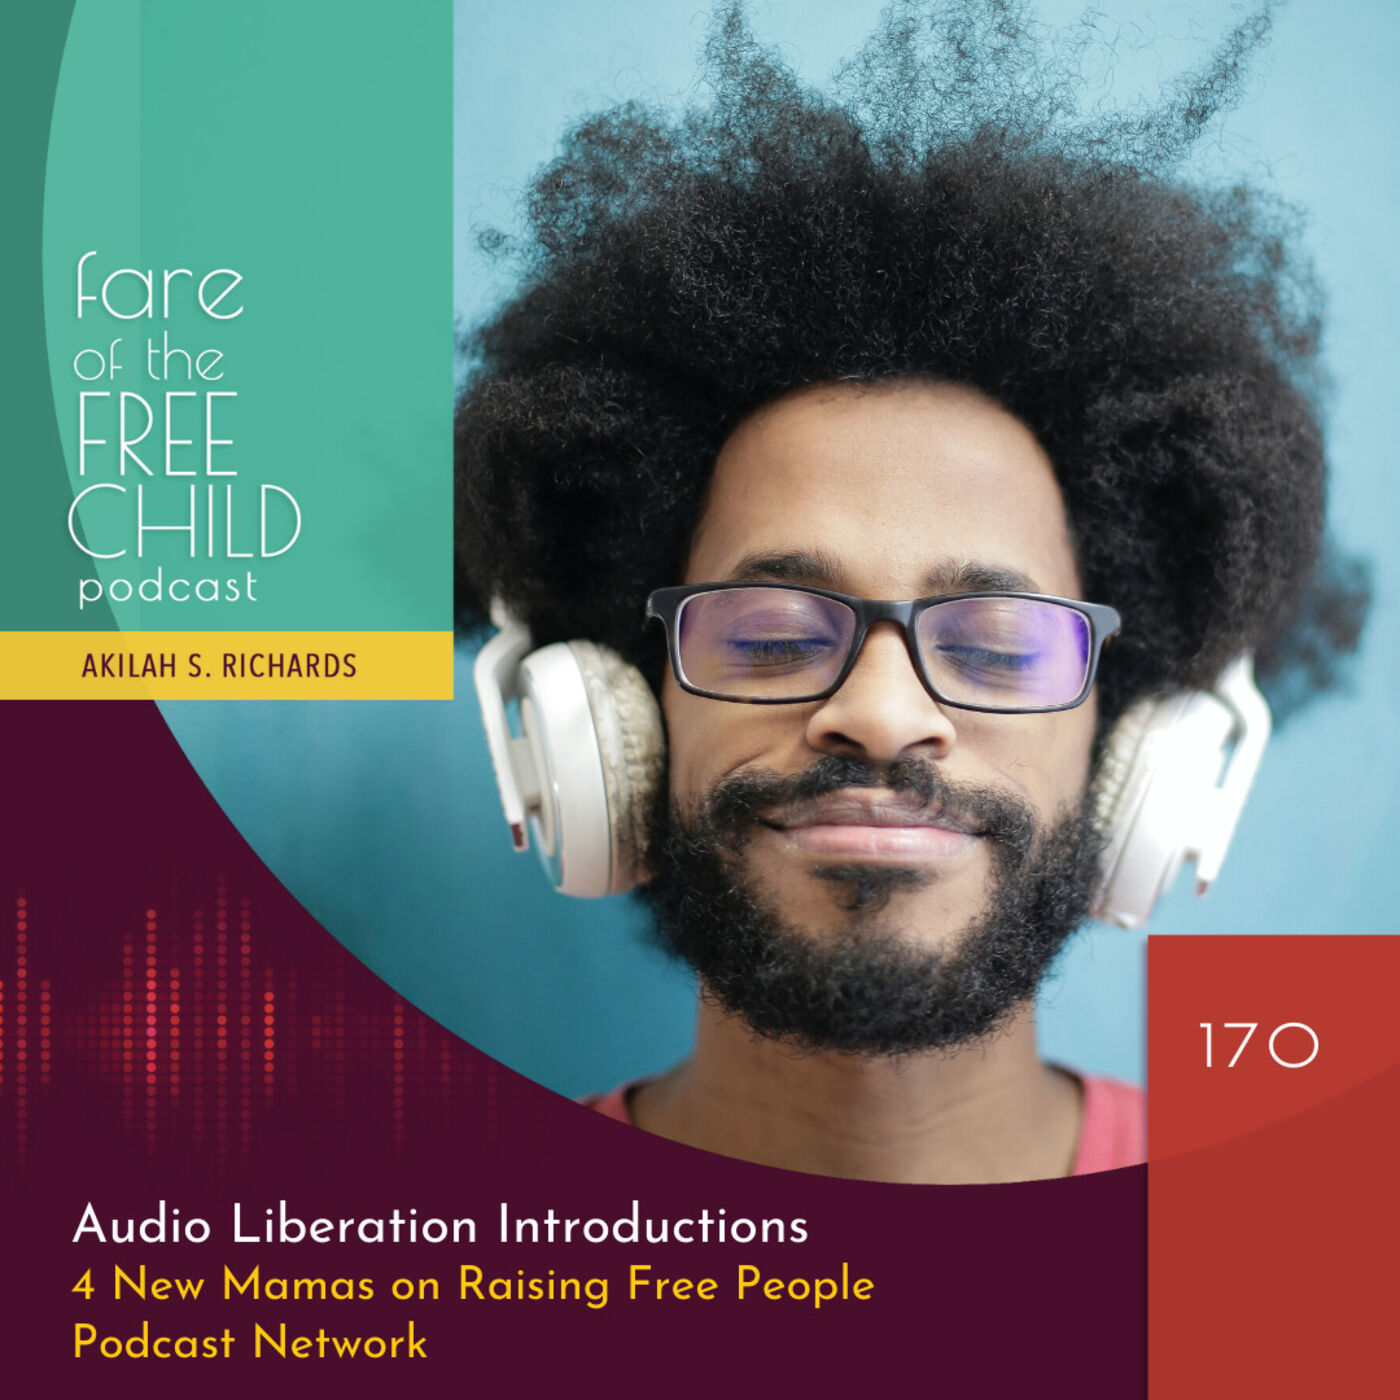 EP 170: Audio Liberation Introductions